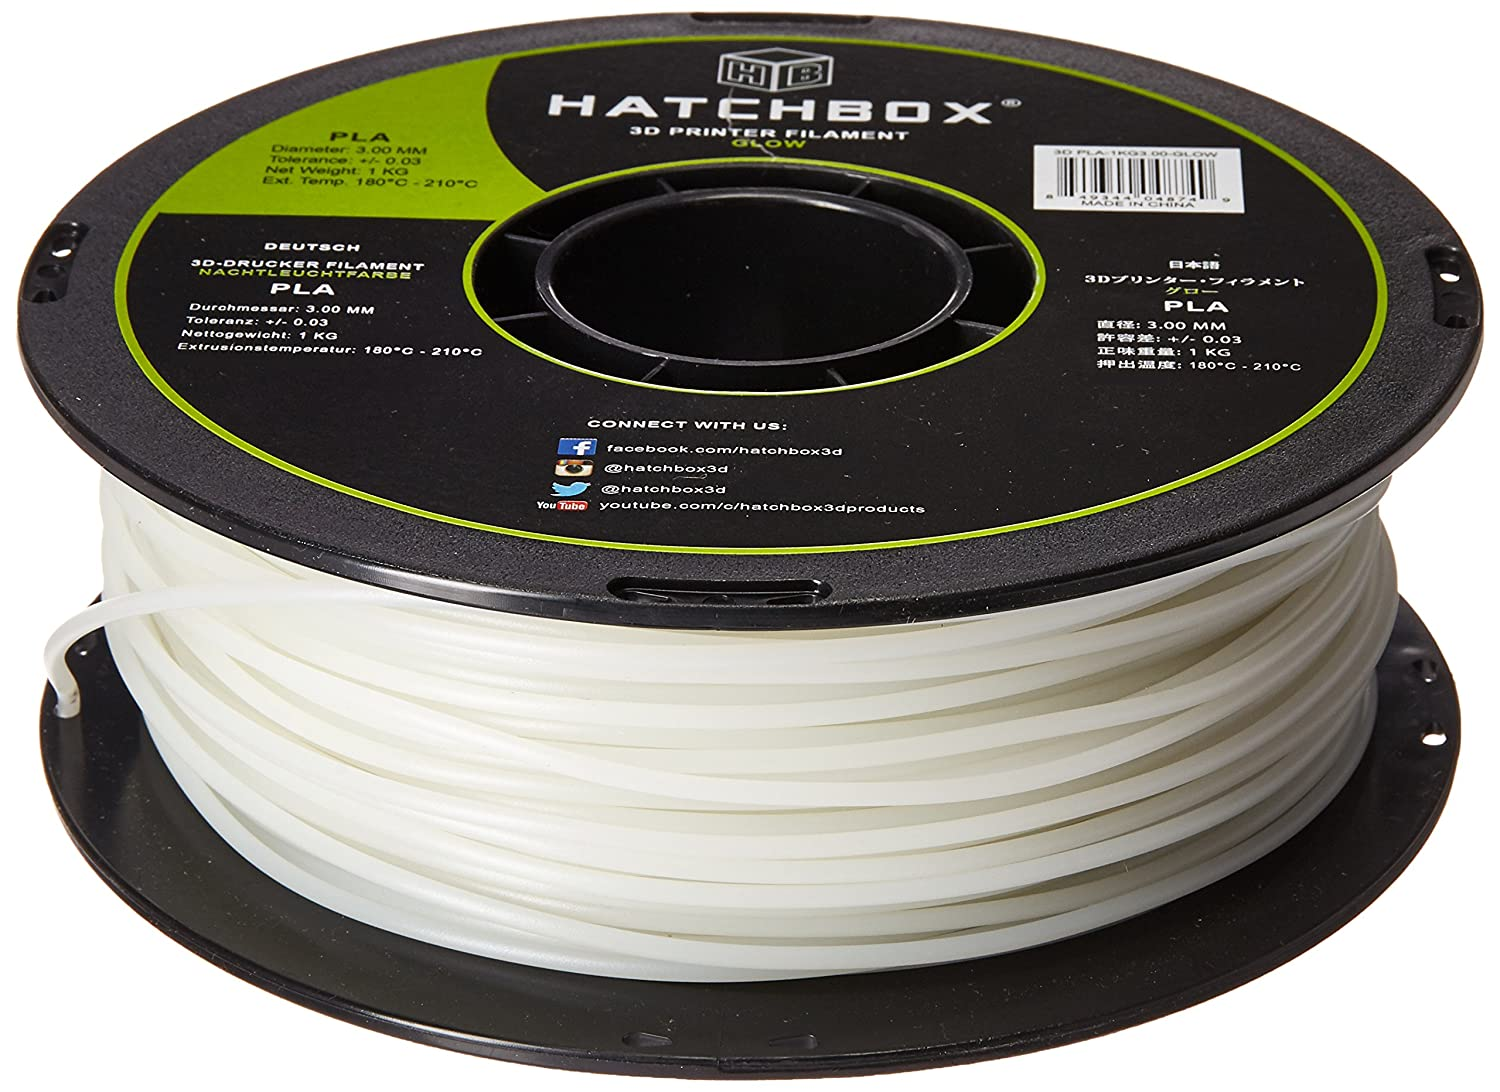 HATCHBOX 3D PLA-1KG3.00-GLOW PLA 3D Printer Filament, Diional Accuracy on tube assembly, tube terminals, tube fuses, tube dimensions,